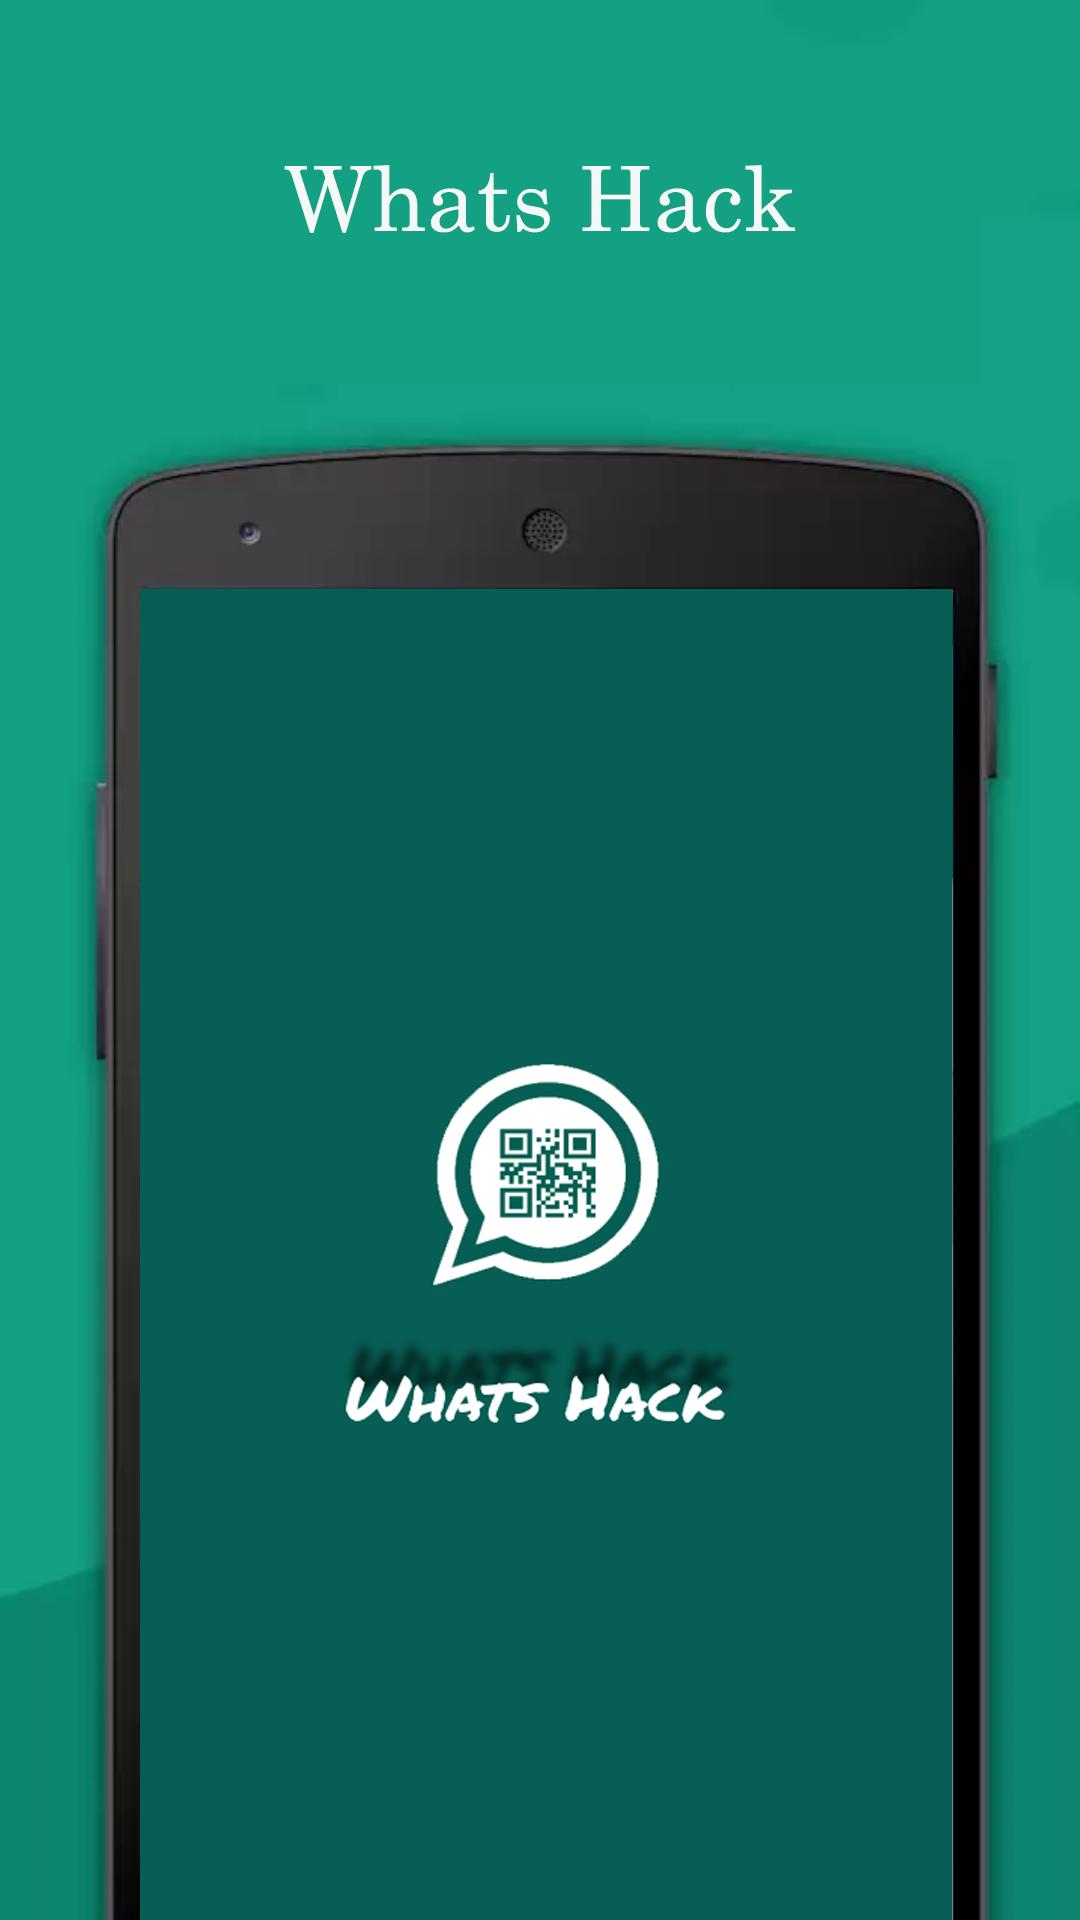 Whats Hack poster